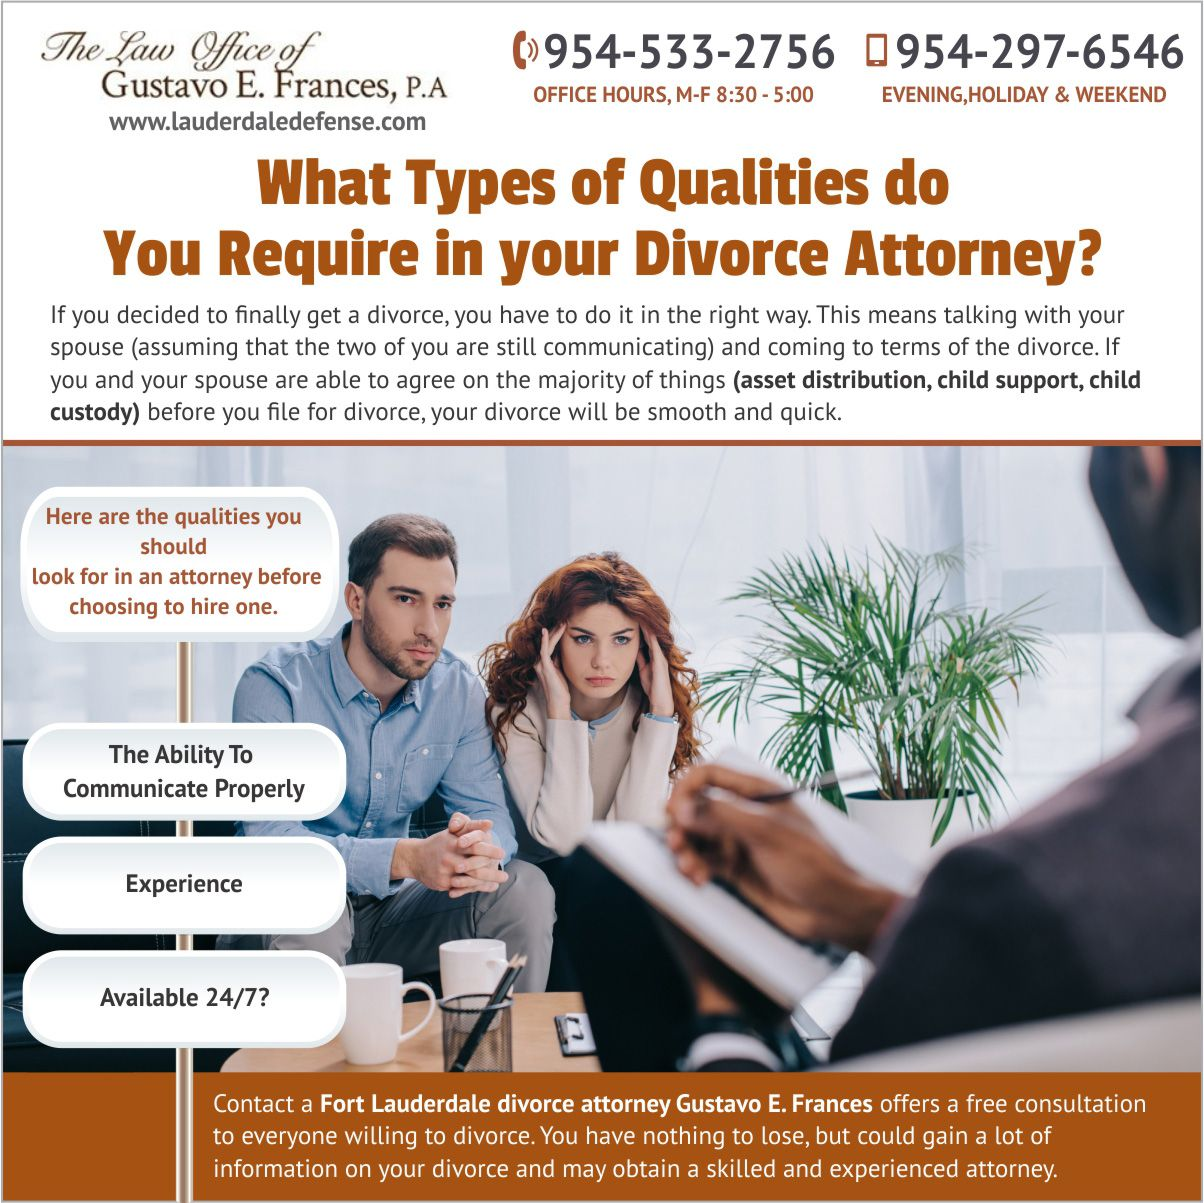 If you decided to finally get a divorce you have to do it